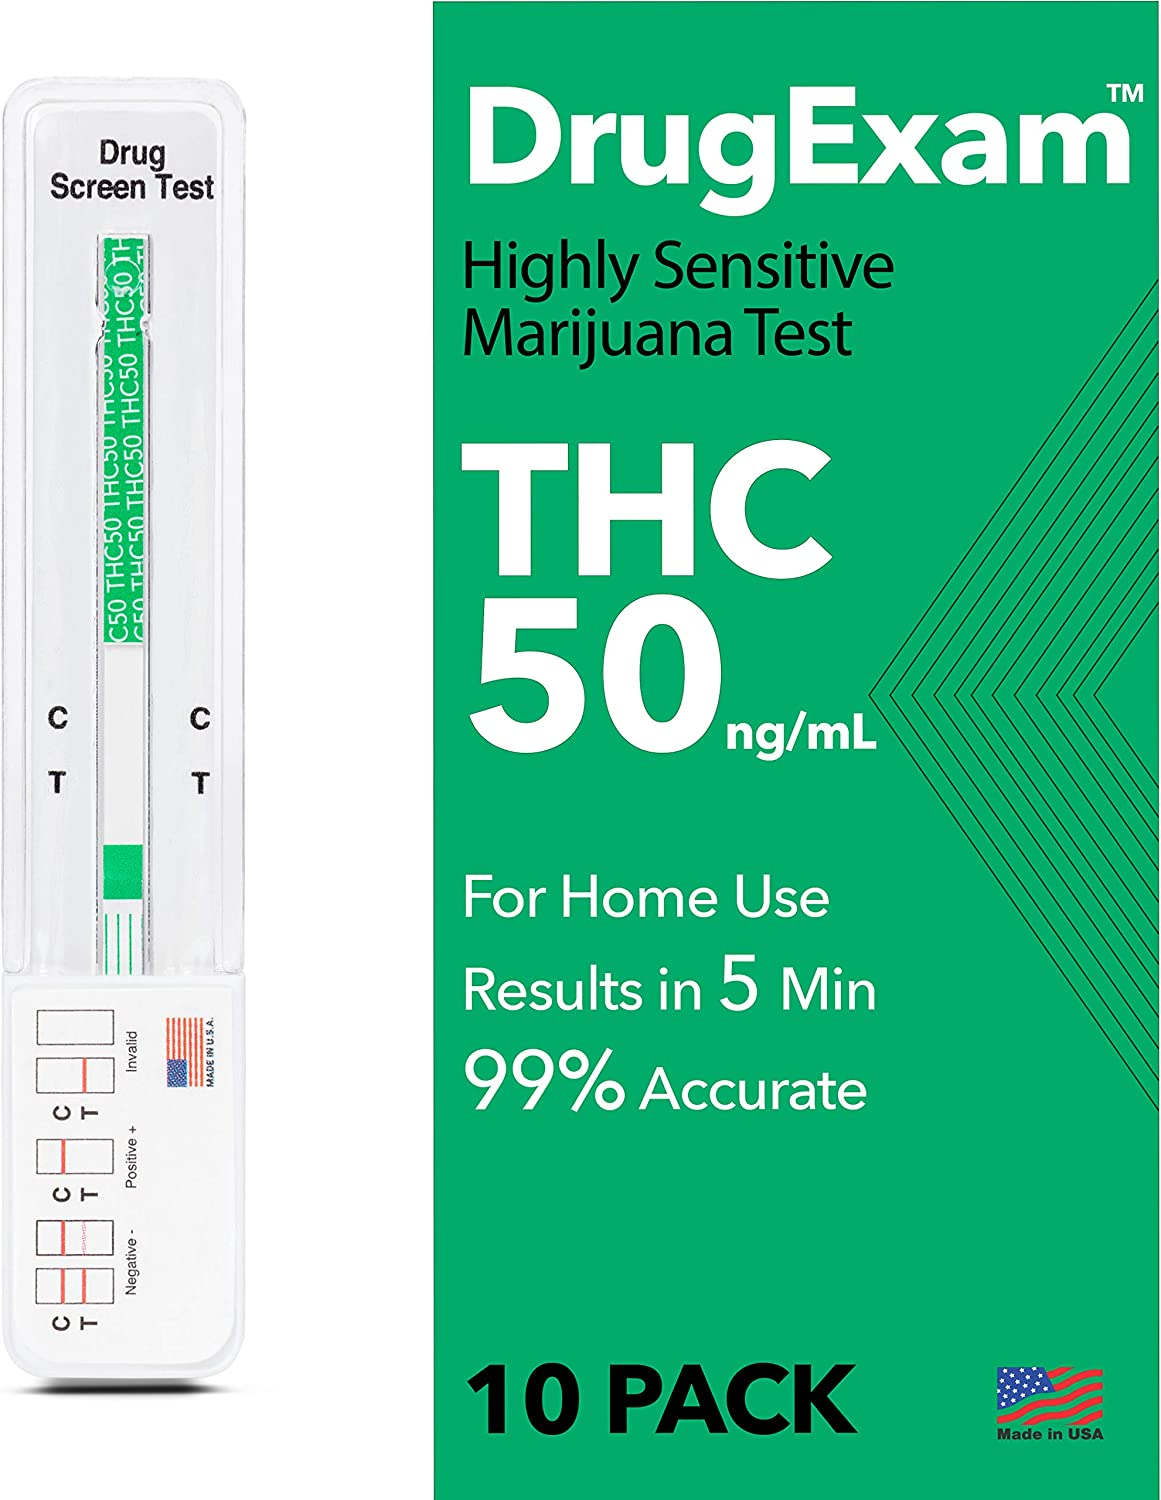 10 Pack - DrugExam Made in USA Highly Sensitive Marijuana THC 50 ng/mL Single Panel Drug Test Kit - Marijuana Drug Test with 50 ng/mL Cutoff Level for Detecting Any Form of THC in Urine up to 45 Days